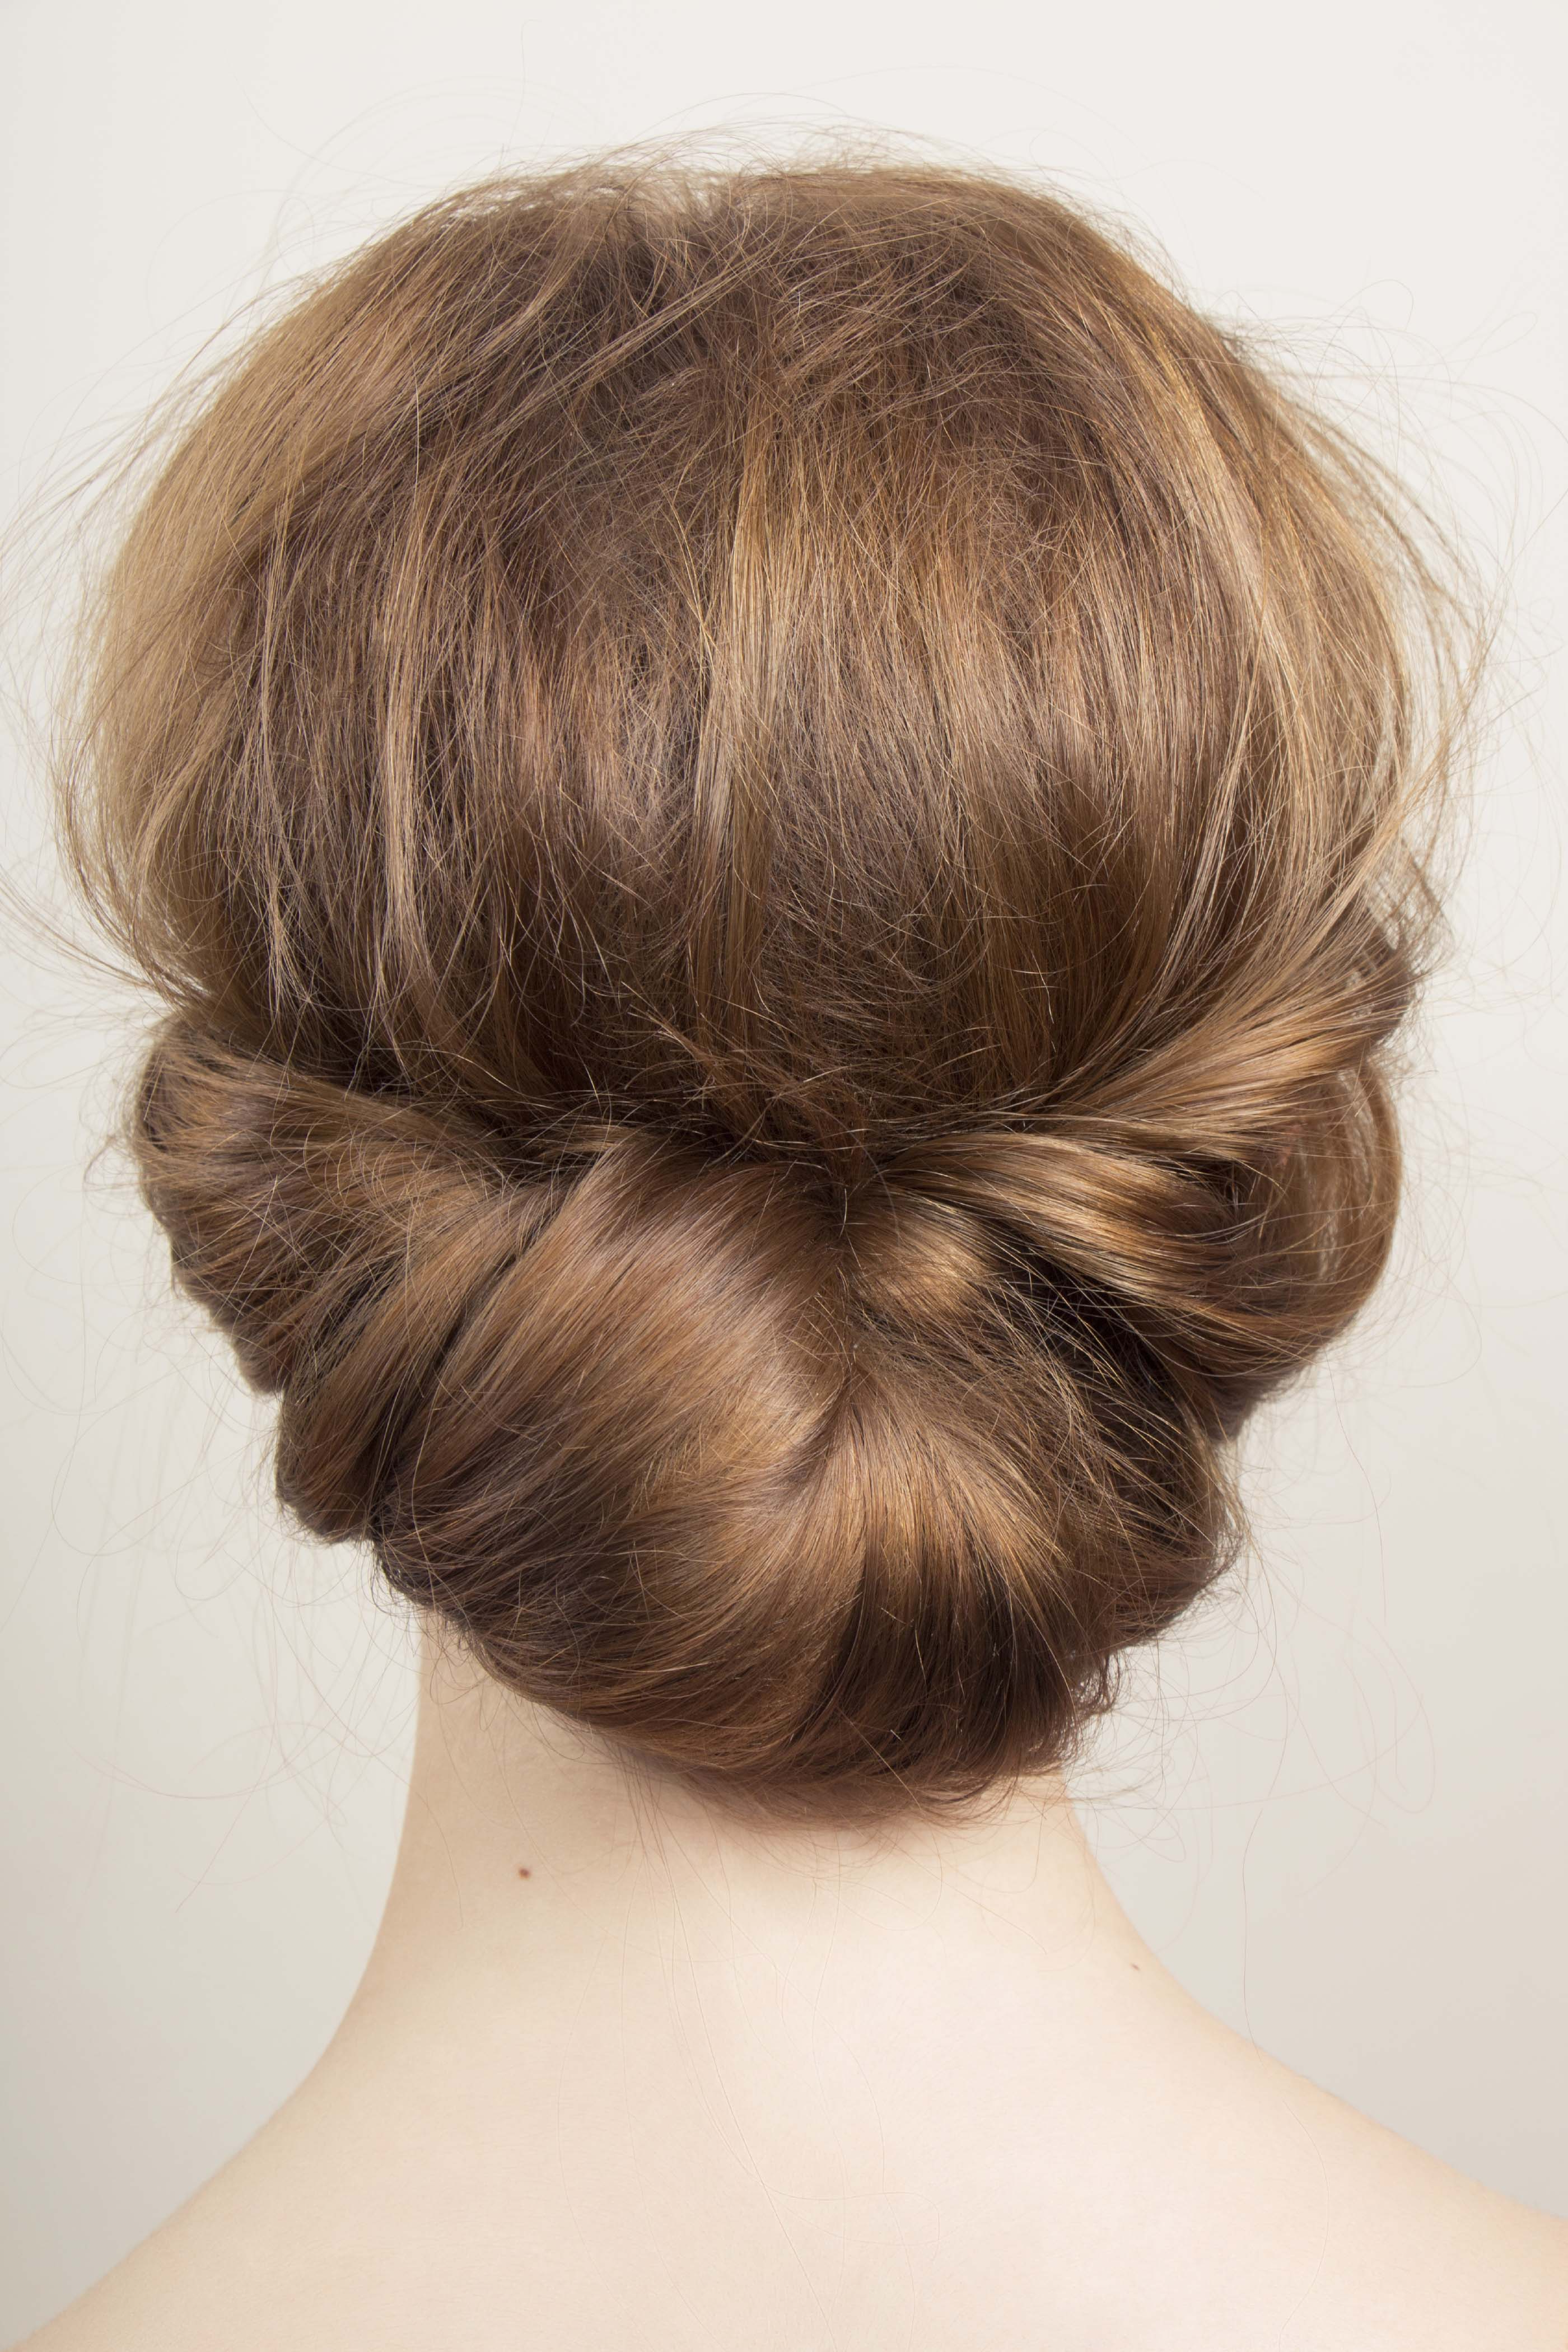 5 Beautiful Mother Of The Bride Hairstyles (View 17 of 20)